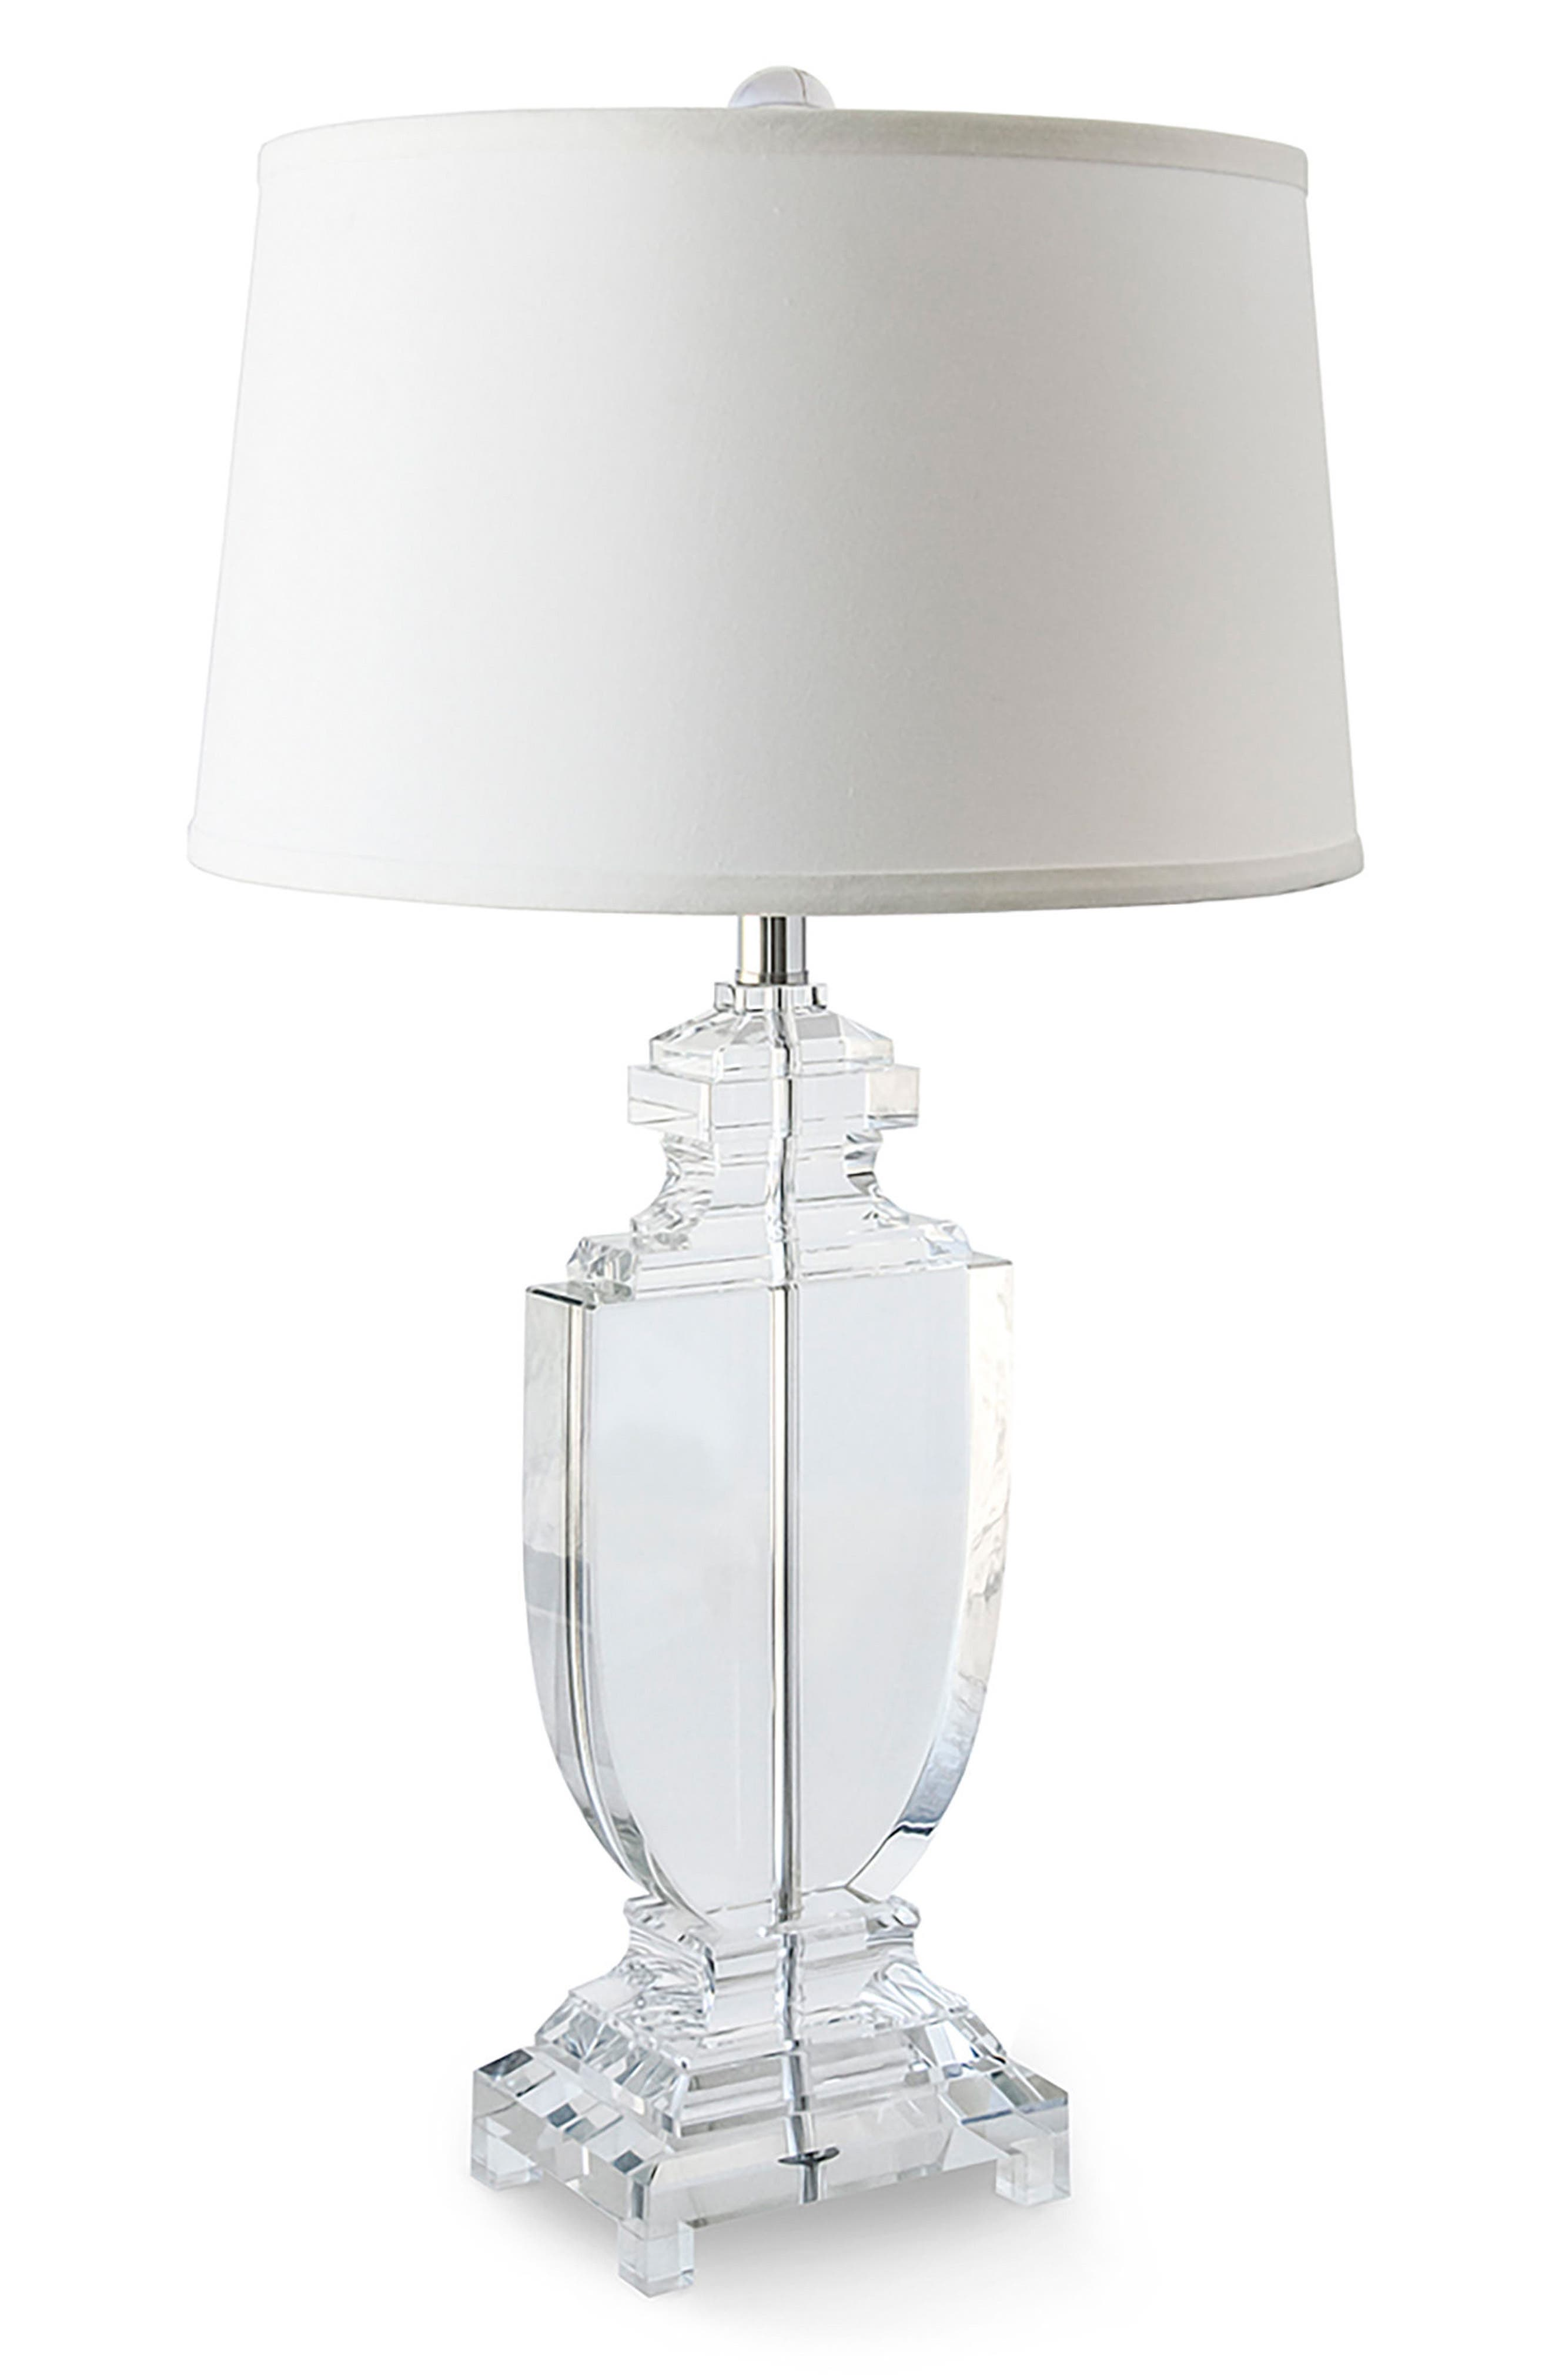 Urn Table Lamp,                         Main,                         color,